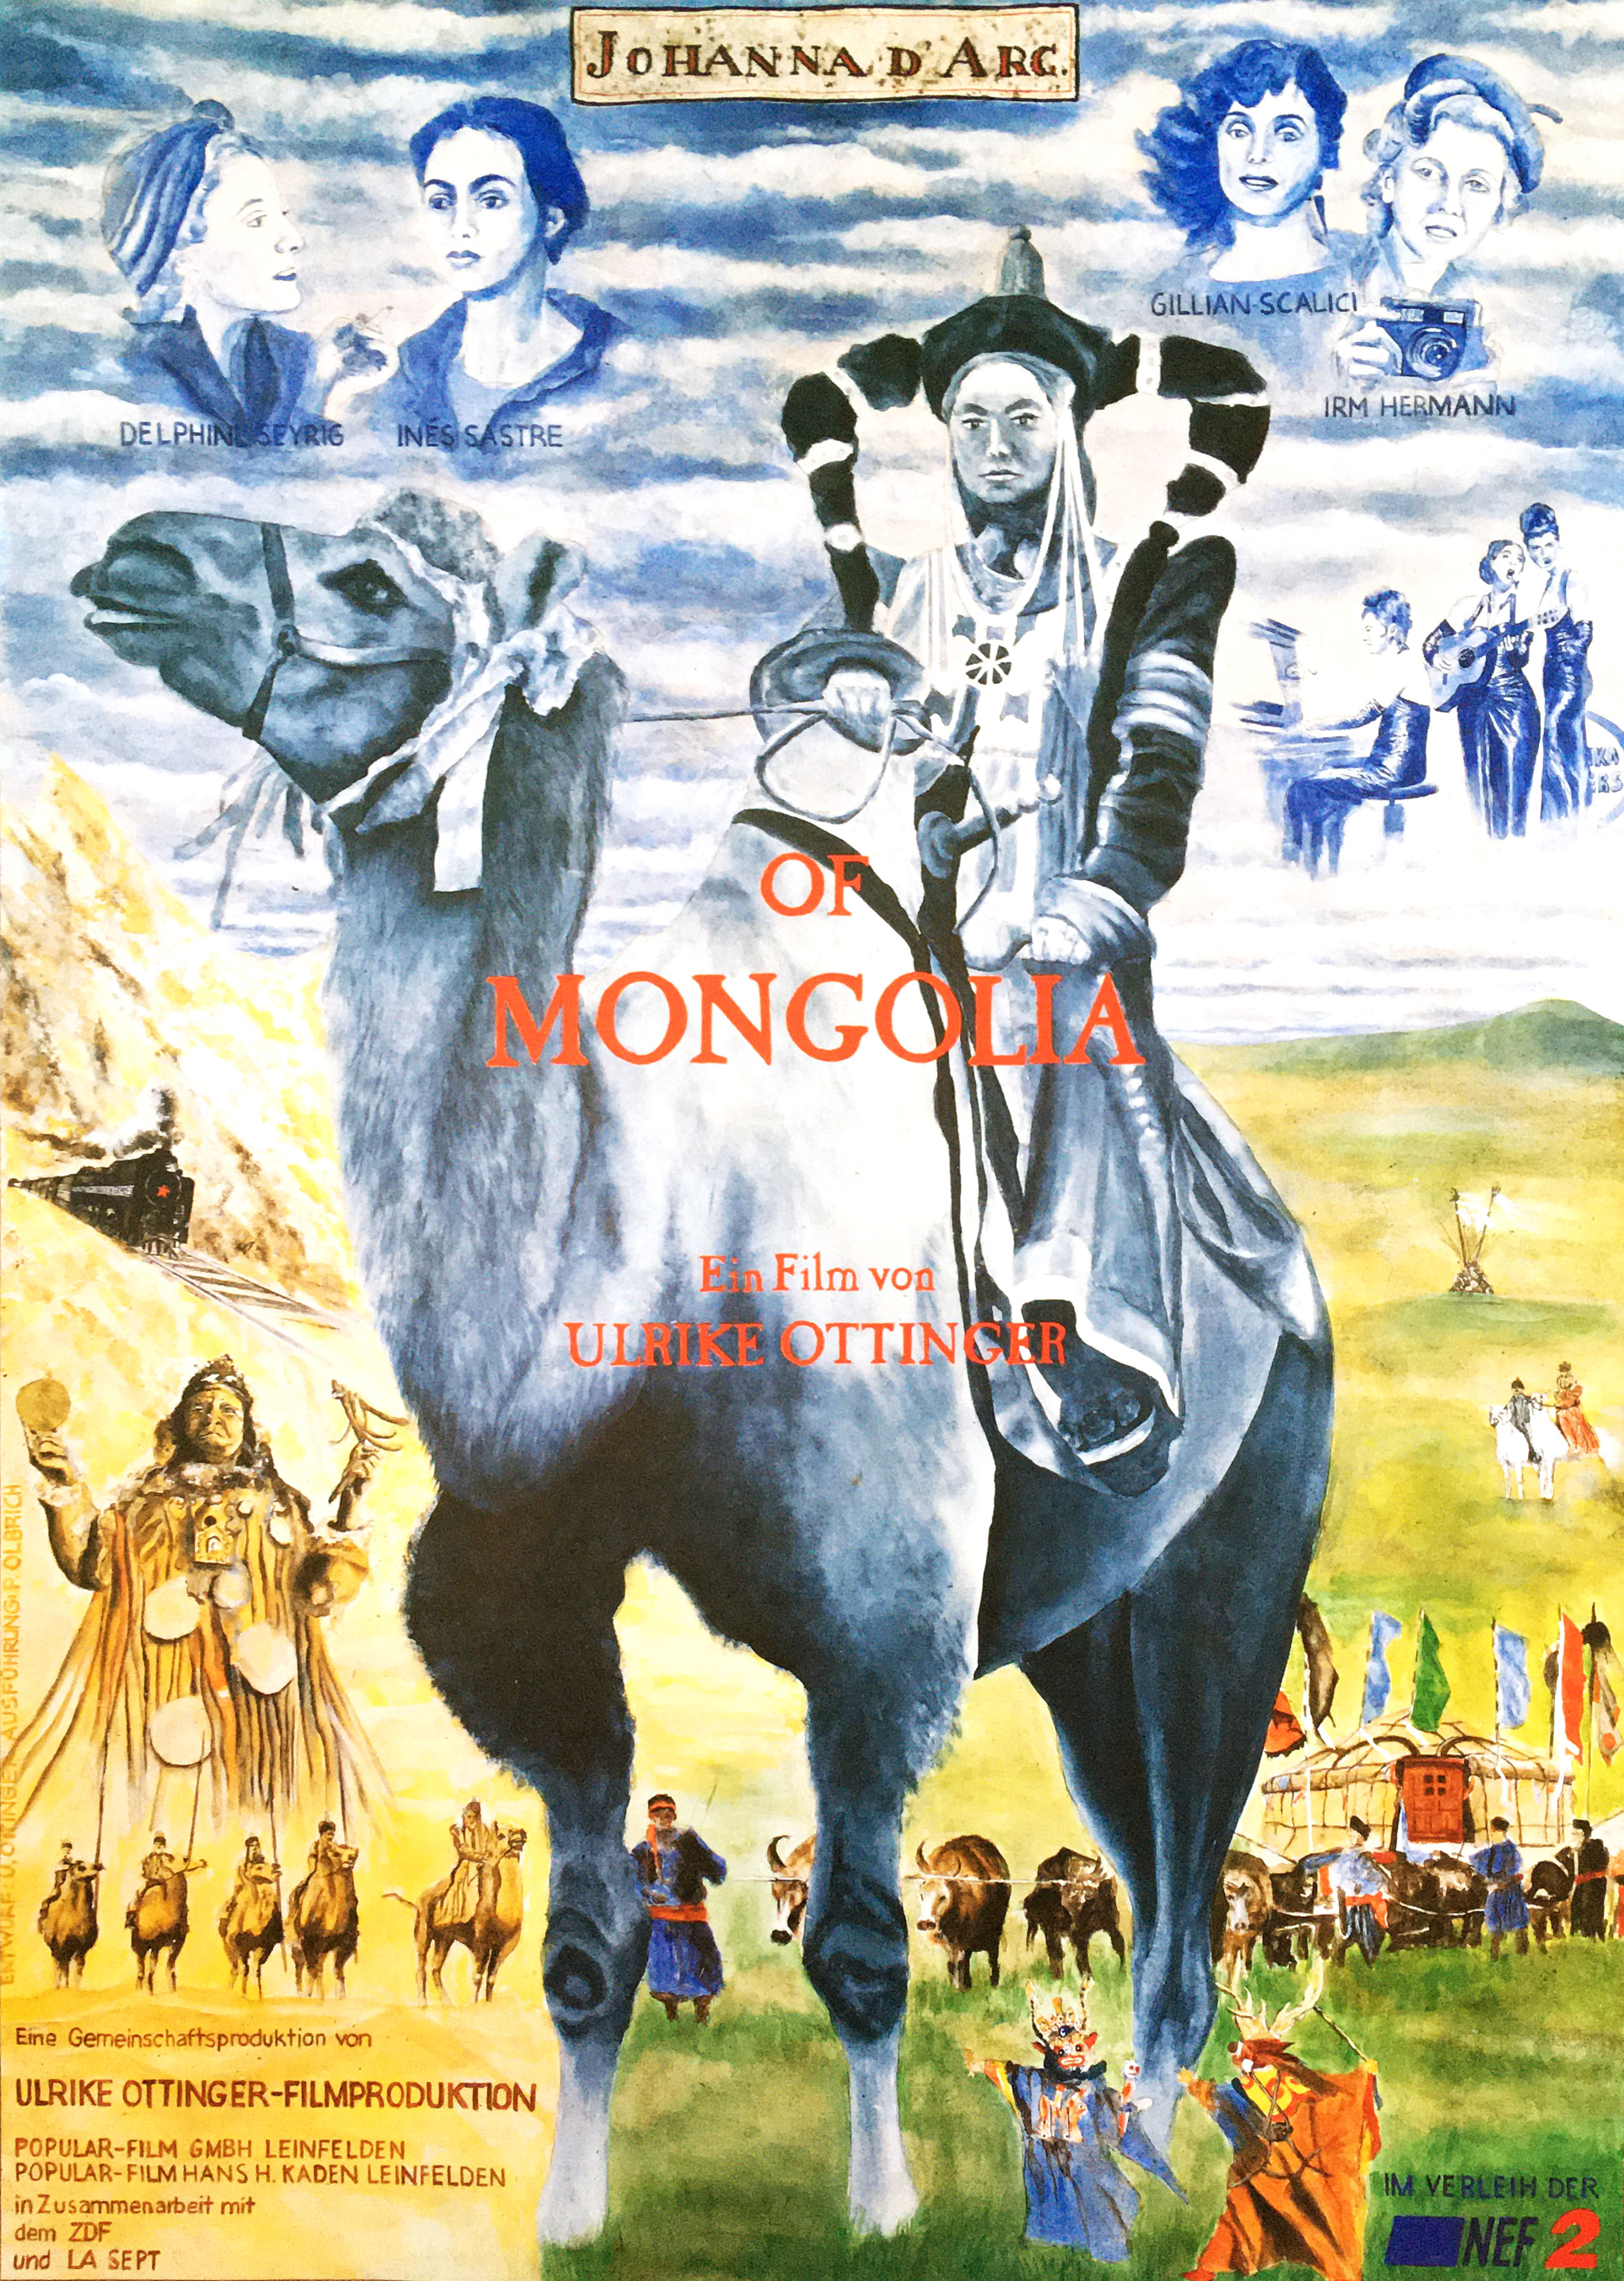 Johanna d'Arc of Mongolia film poster